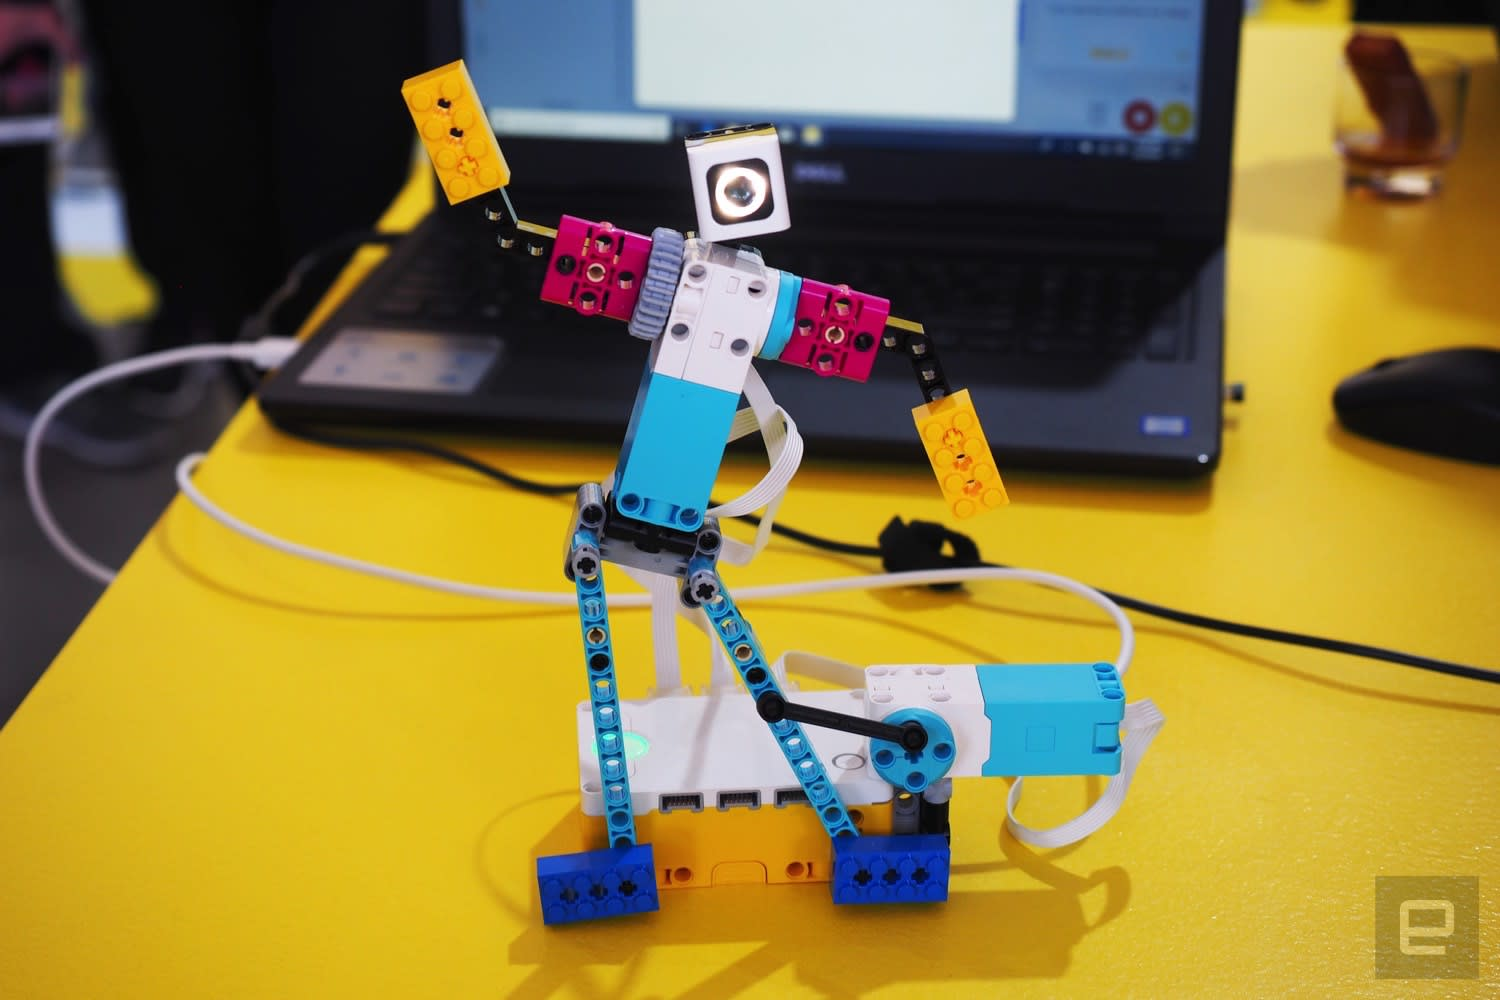 Lego's Spike Prime kits give kids the confidence to code